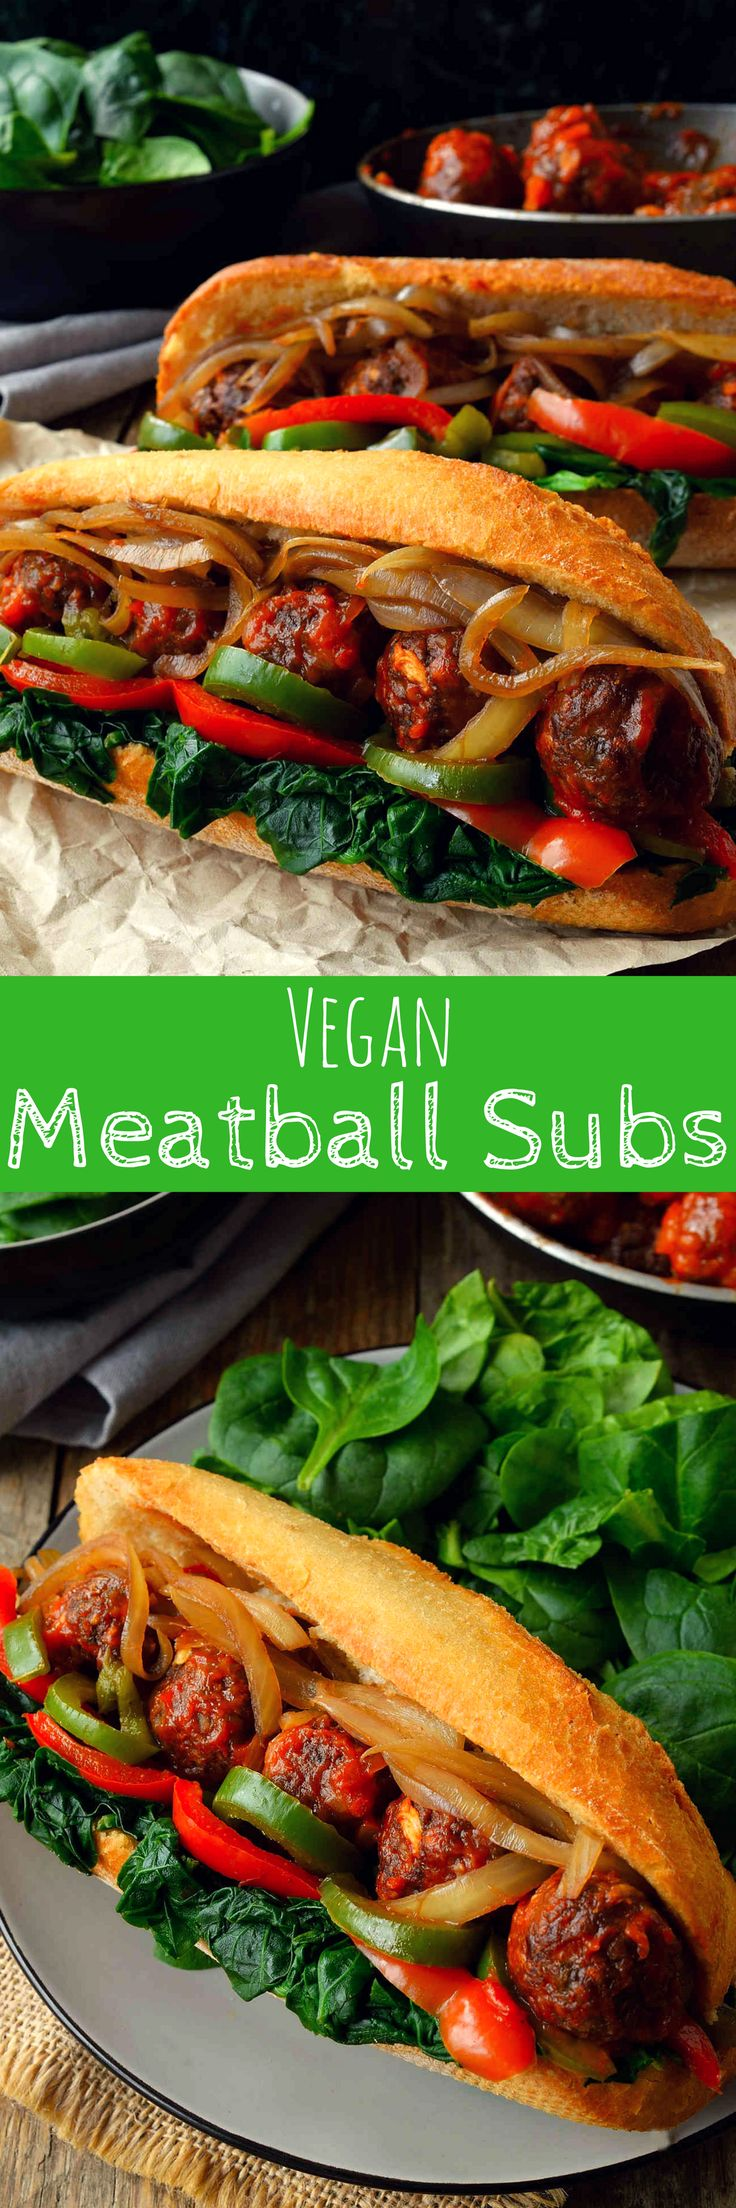 This vegan meatball sub sandwich is super hearty, super flavourful and chock-full of veggies. Baked lentil and mushroom meatballs smothered in marinara sauce and served up in a crusty bun stuffed with spinach, onion and peppers. You might need a knife and fork to get these bad boys in your mouth!